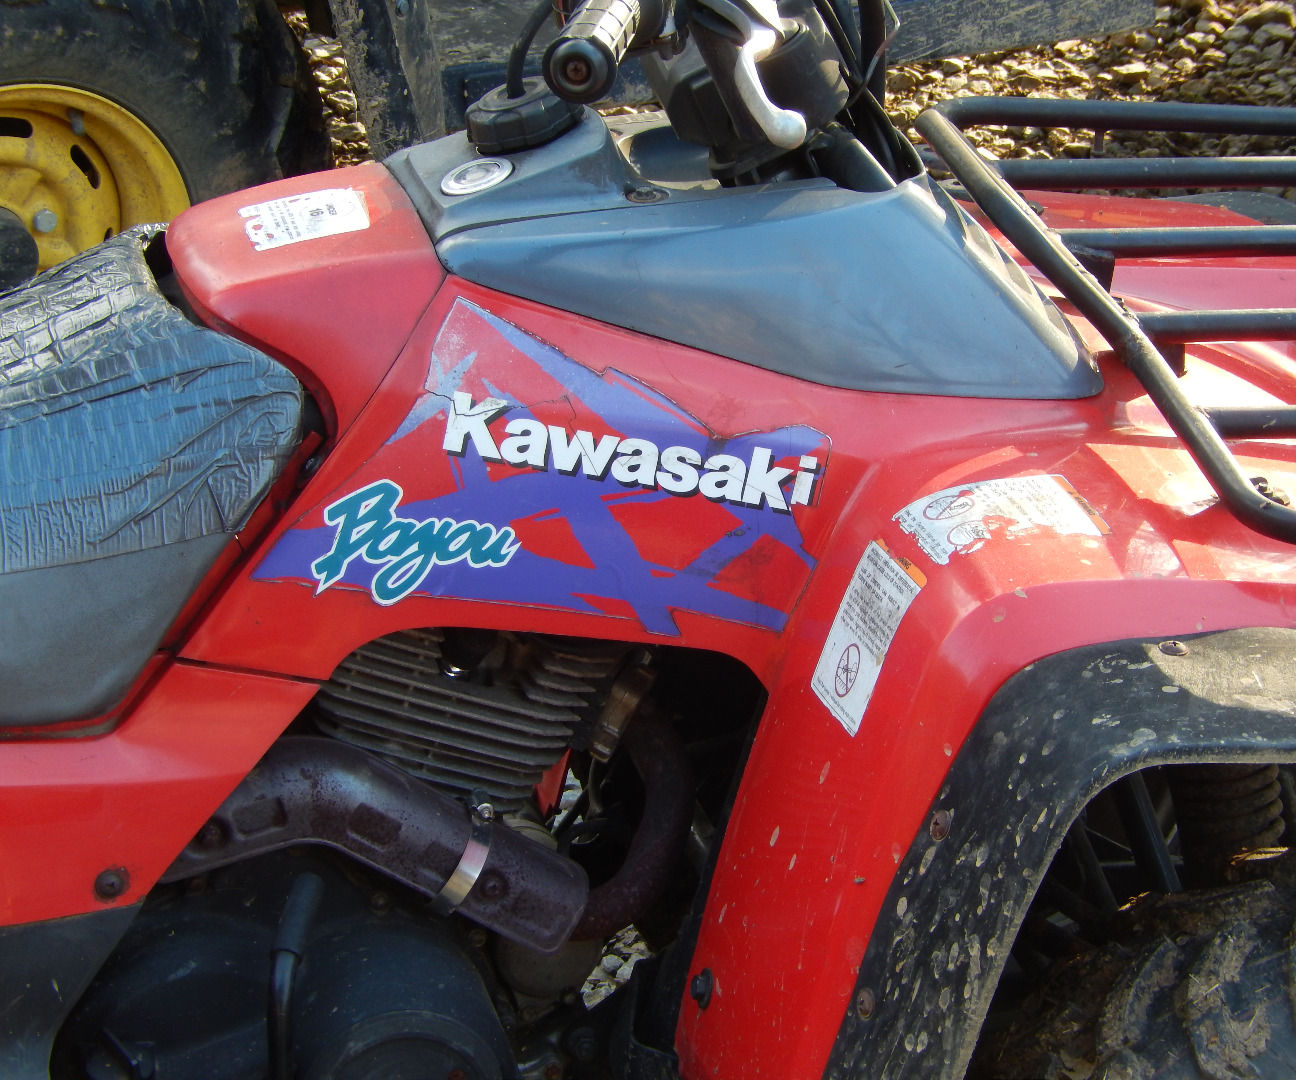 small resolution of 1991 kawasaki bayou 300 4x4 wiring diagram house wiring diagram 2001 kawasaki prairie 300 wiring diagram kawasaki klf 300 4x4 wiring diagram